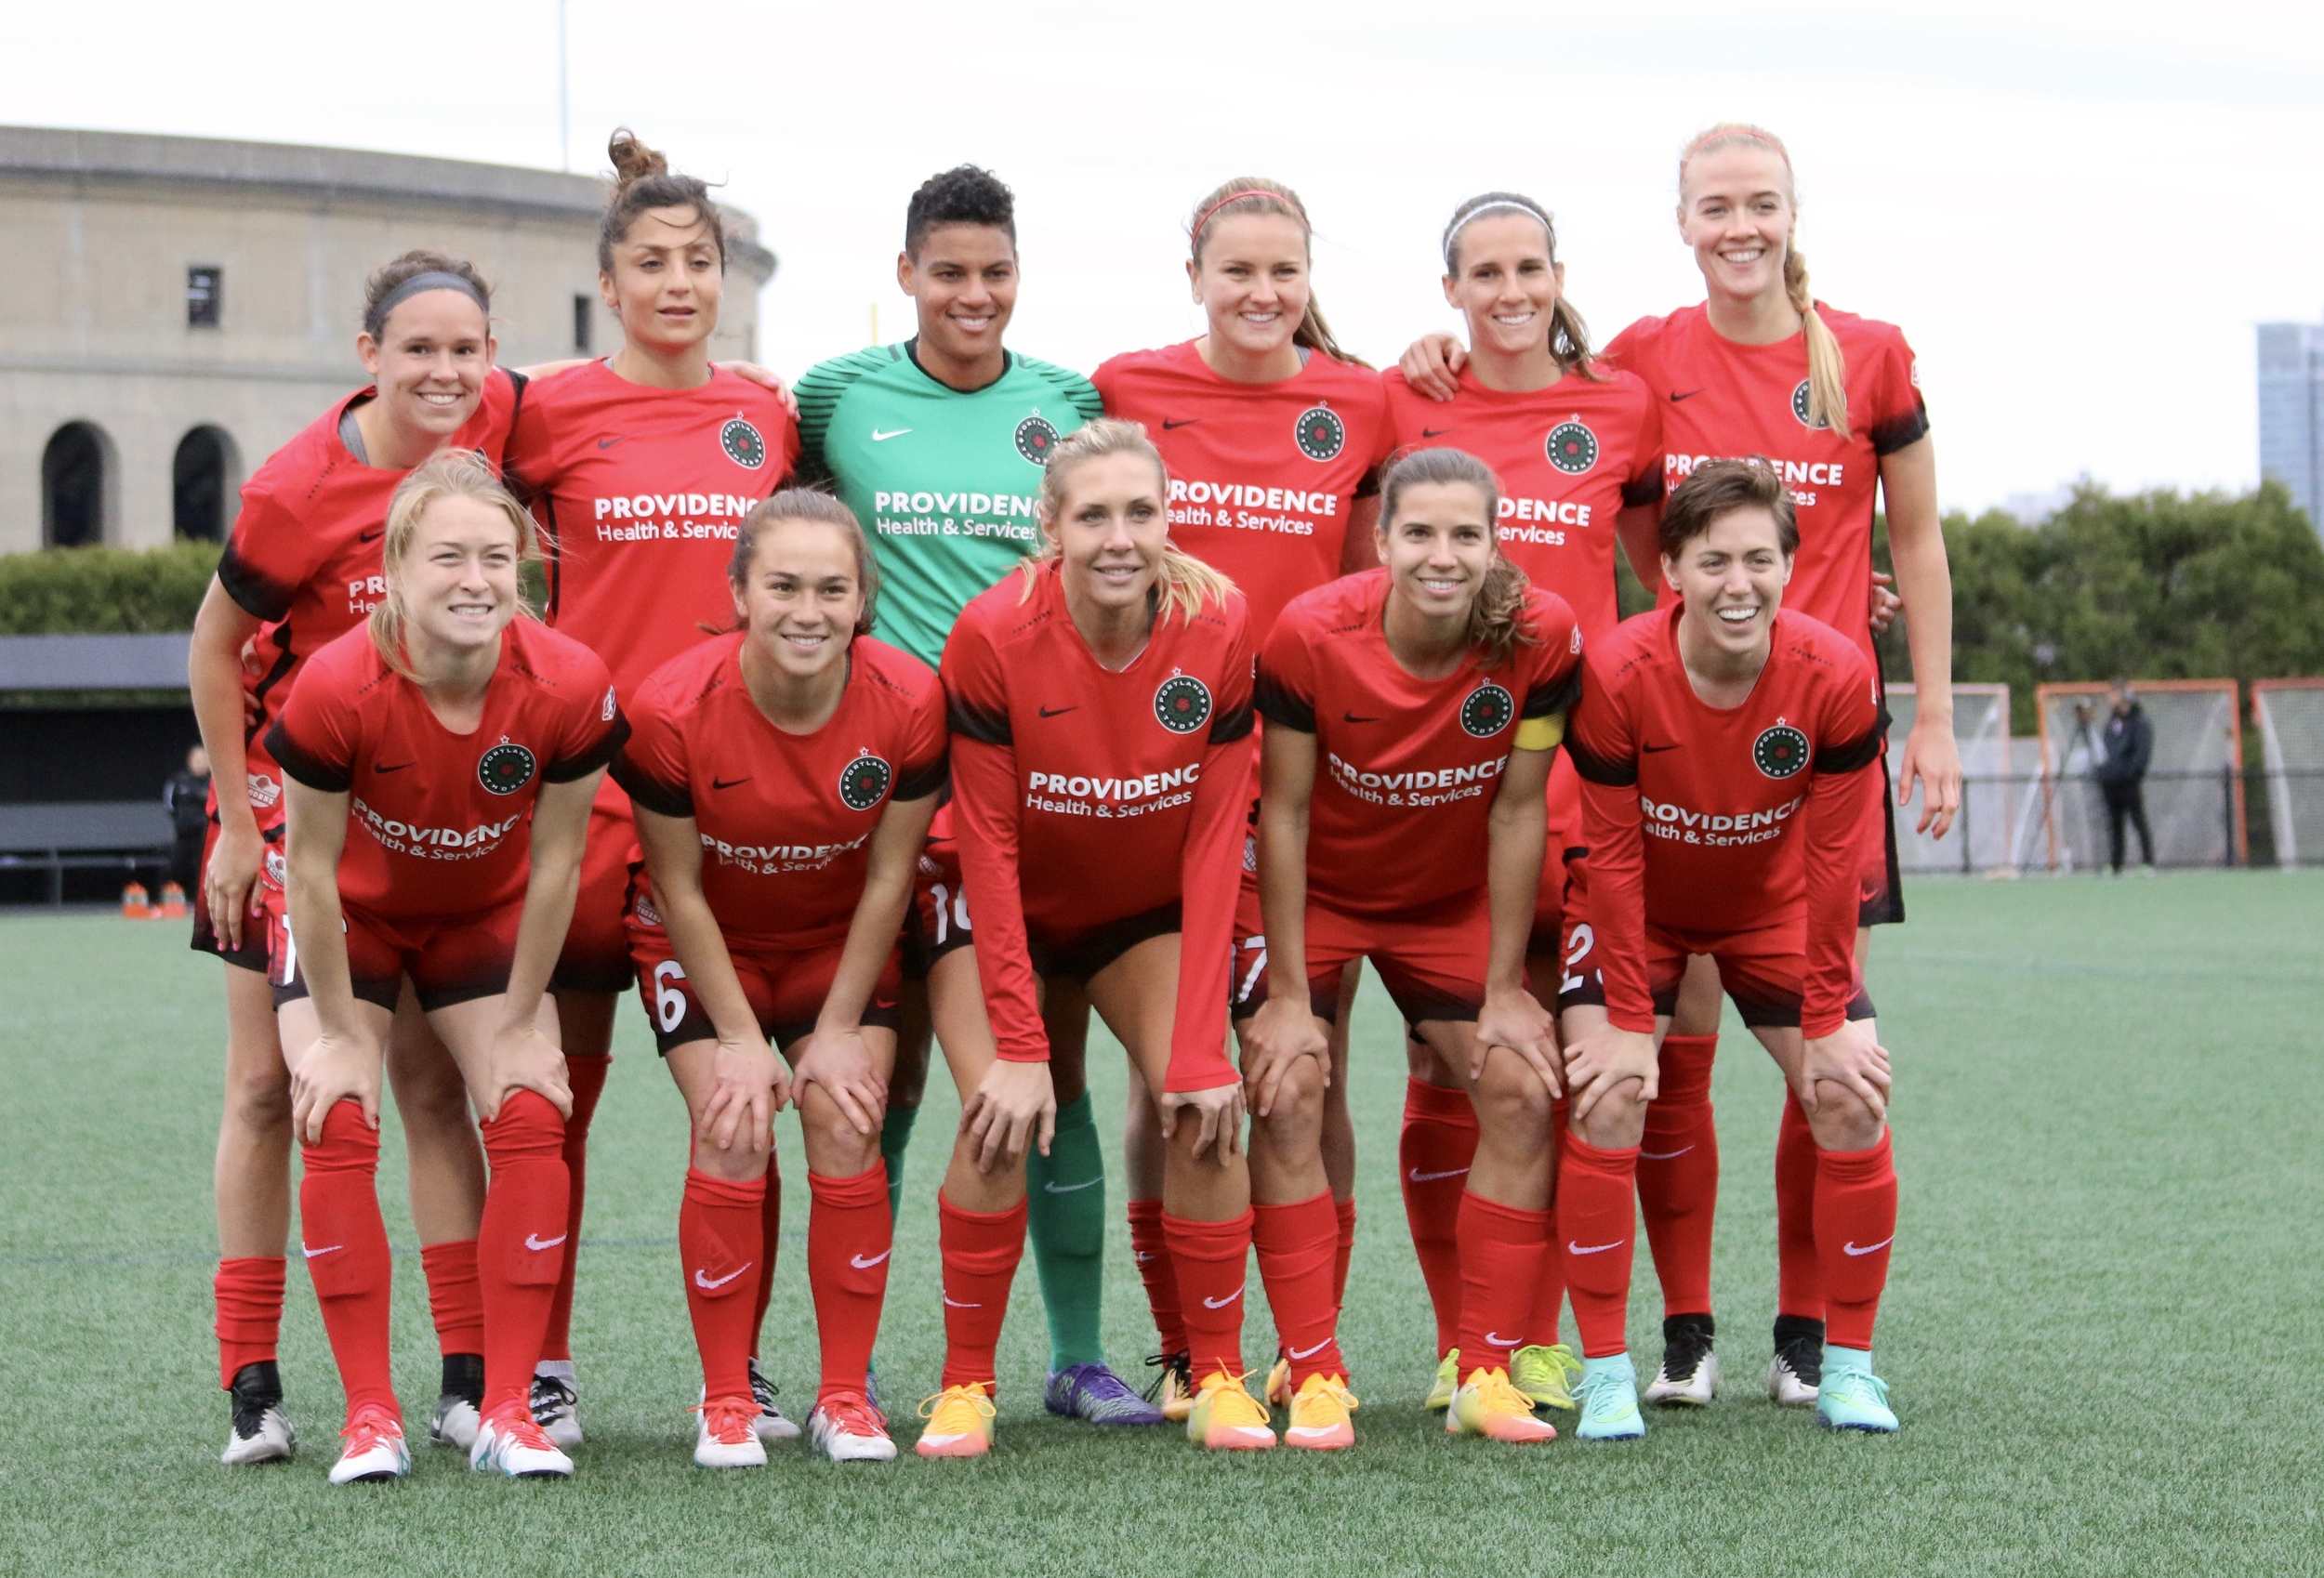 this team would beat all but one or two international sides, and Amandine henry and Christine sinclair aren't even available yet.